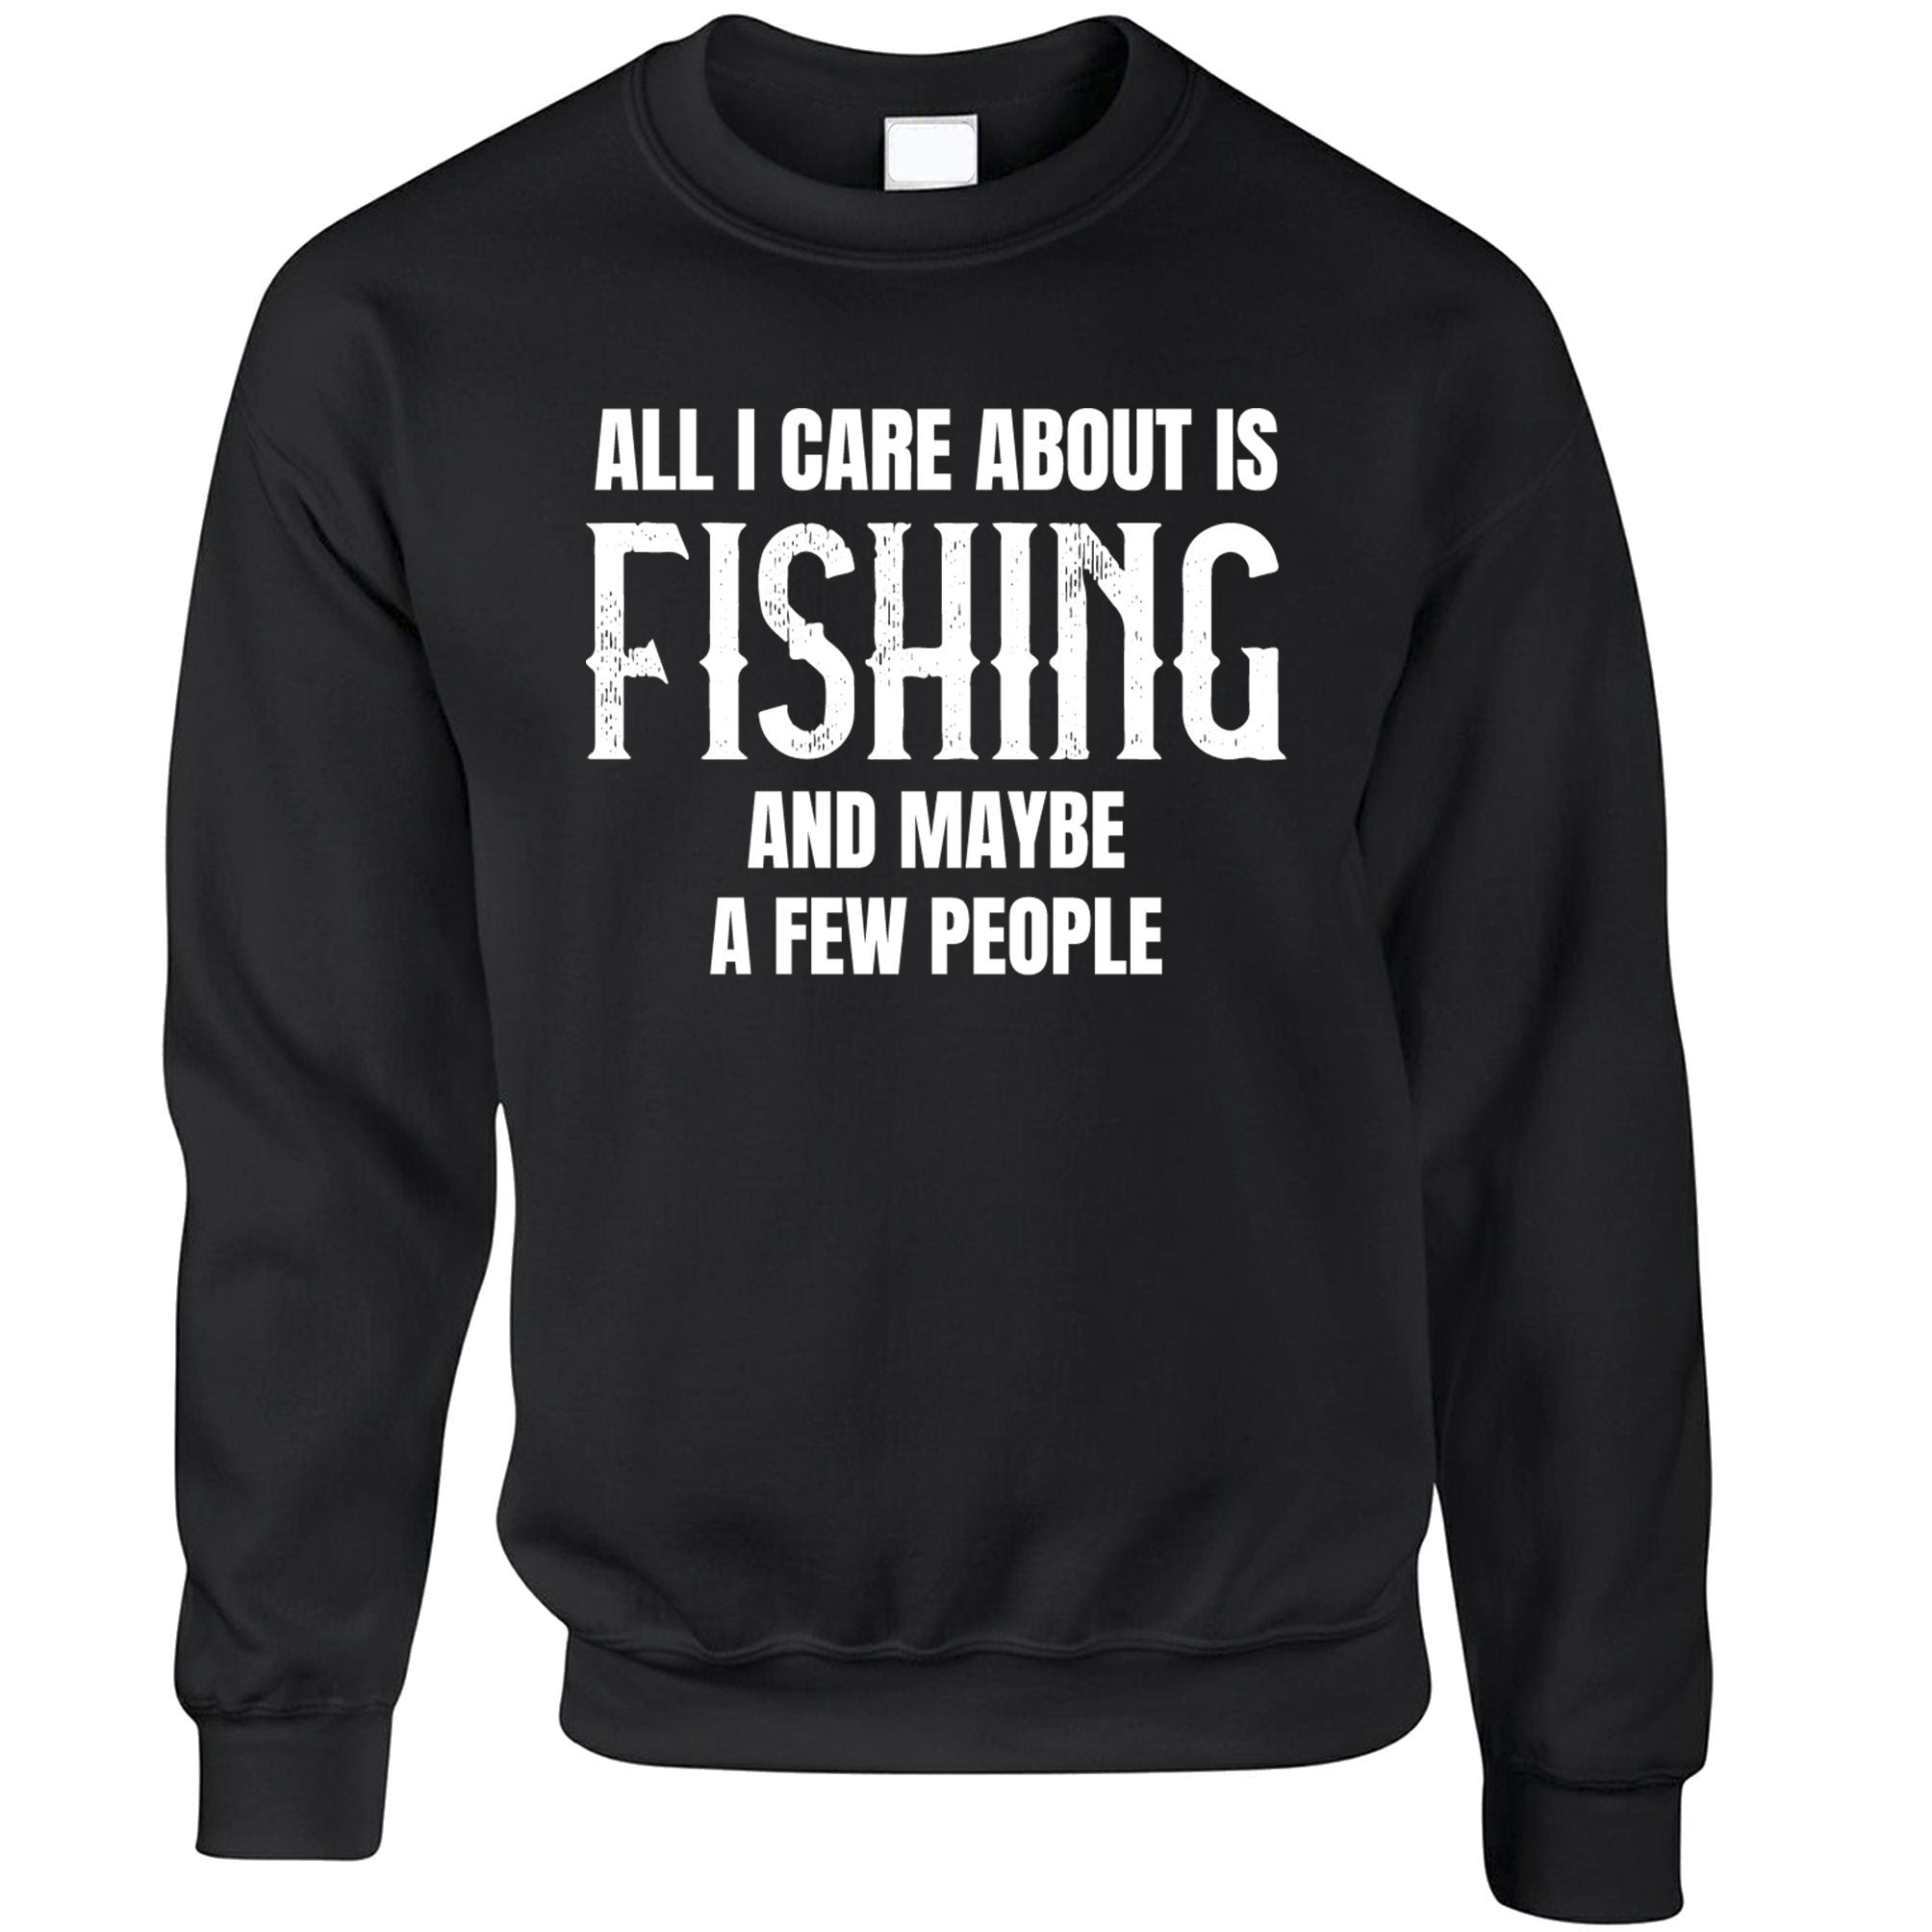 Novelty Jumper All I Care About Is Fishing Sweatshirt Sweater